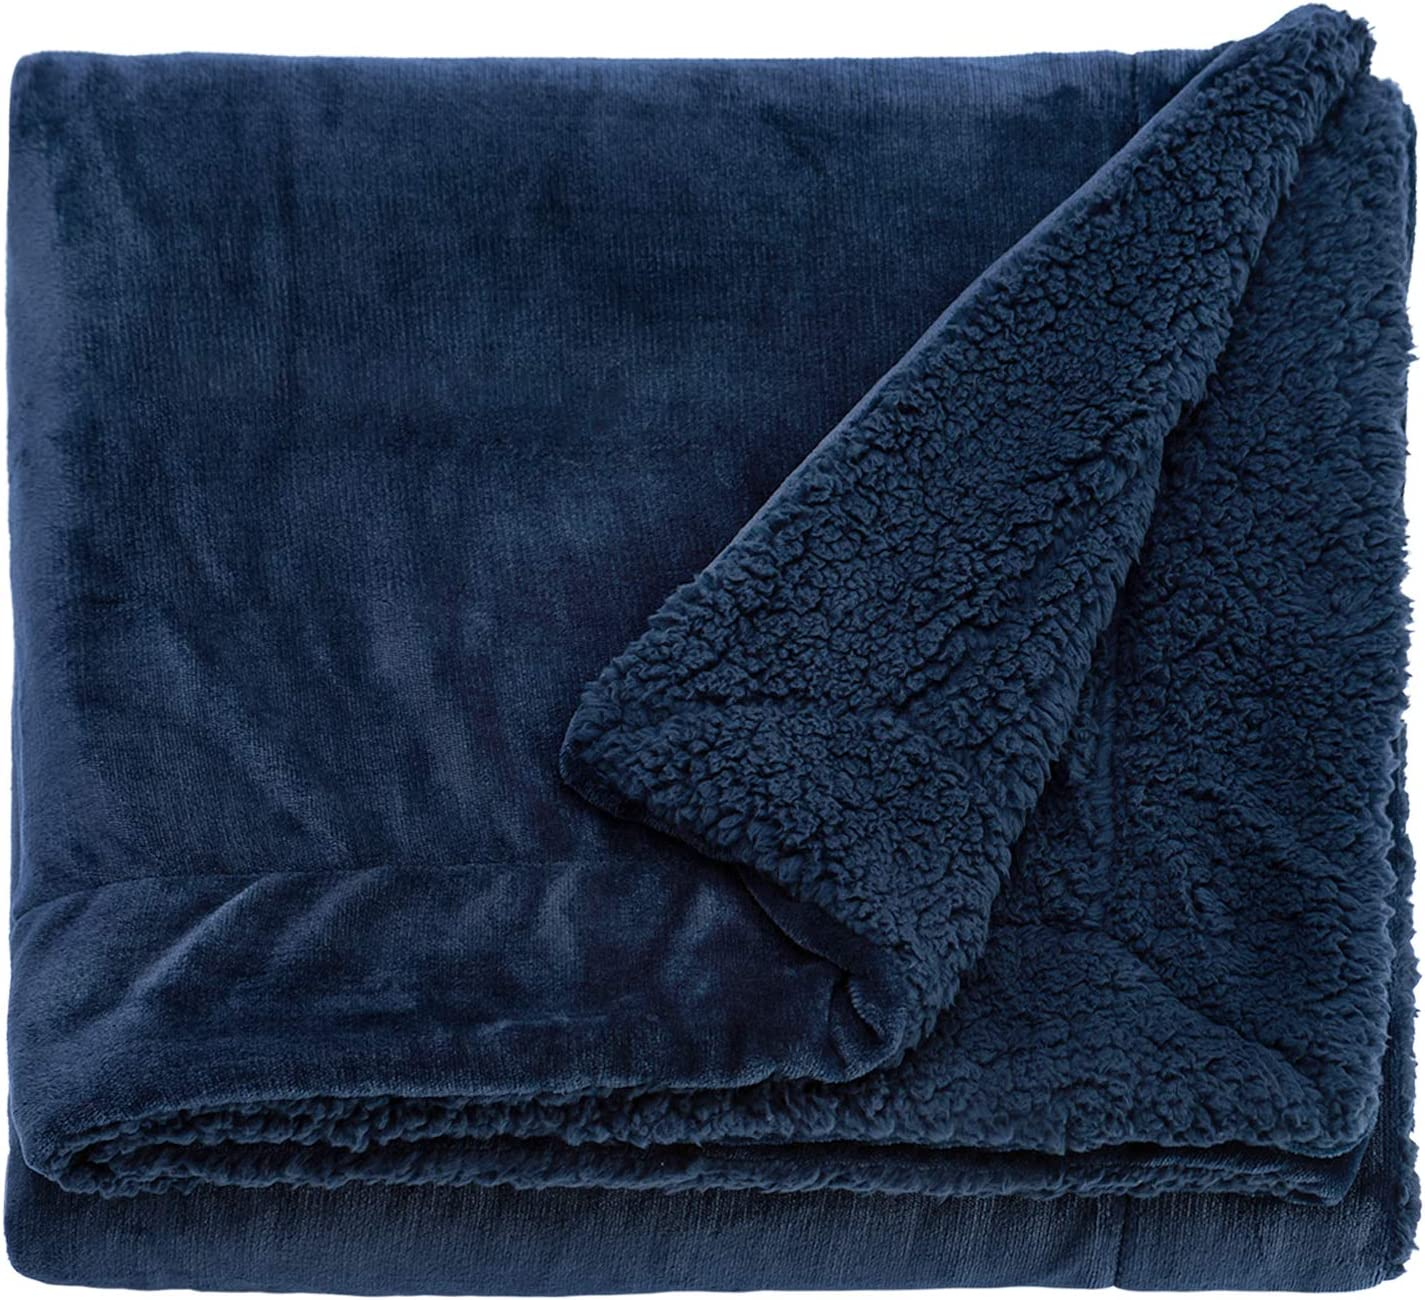 Sivio Faux Fur Sherpa Fleece Blanket Twin Size 60x80 Inches Navy Blue Plush Throw Blanket Fuzzy Soft Blanket Microfiber for Couch Sofa Ultra Luxurious Warm and Cozy for All Seasons Bed